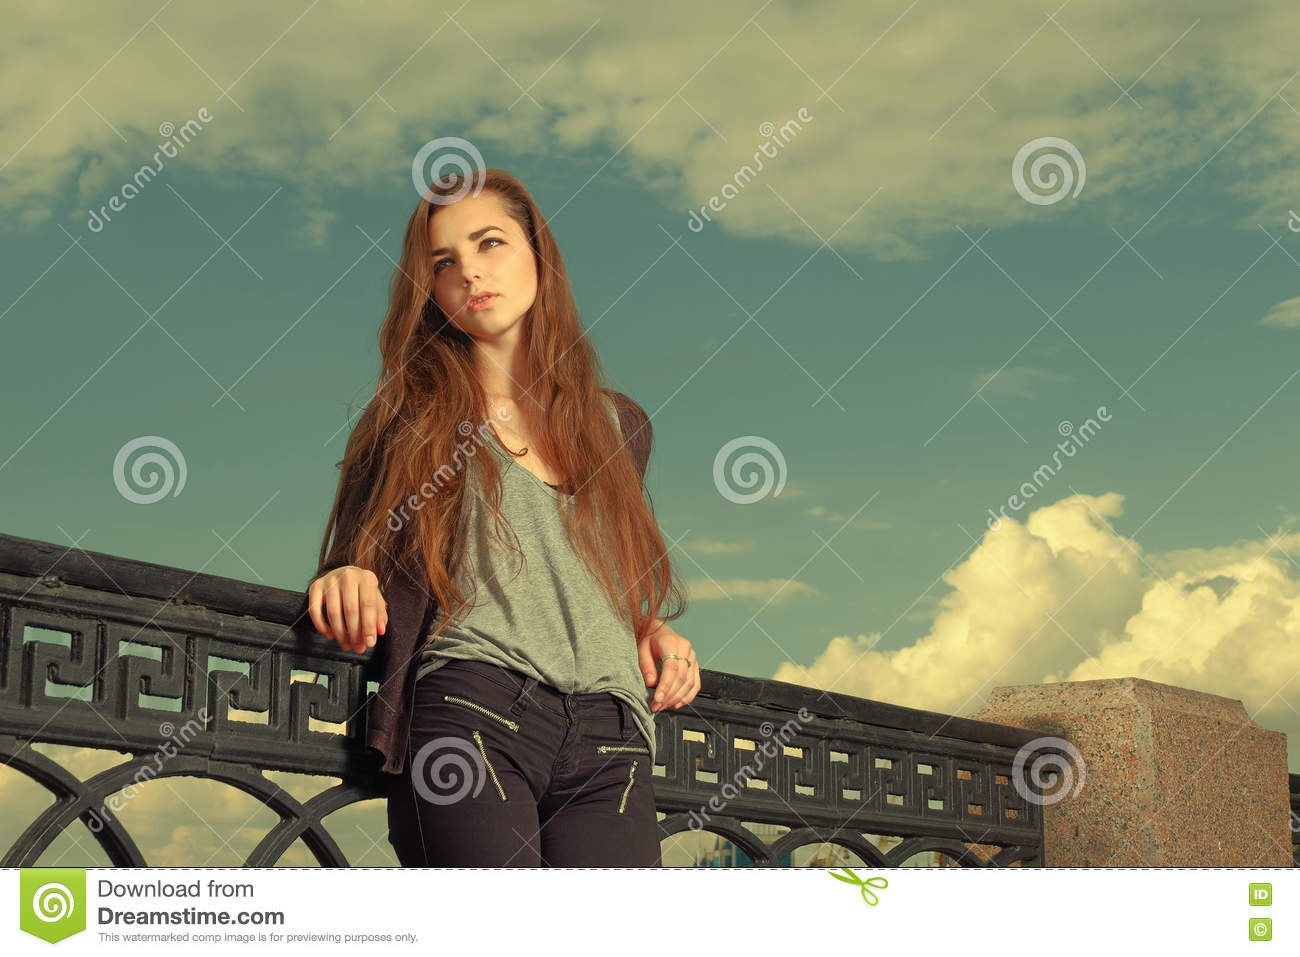 Download Lonely Girl Waits Someone To Talk. Wearing Light Gray Sweater, Black Pants, An Youg American Woman Standing By Metal Stock Image - Image of long, beautiful: 70829787